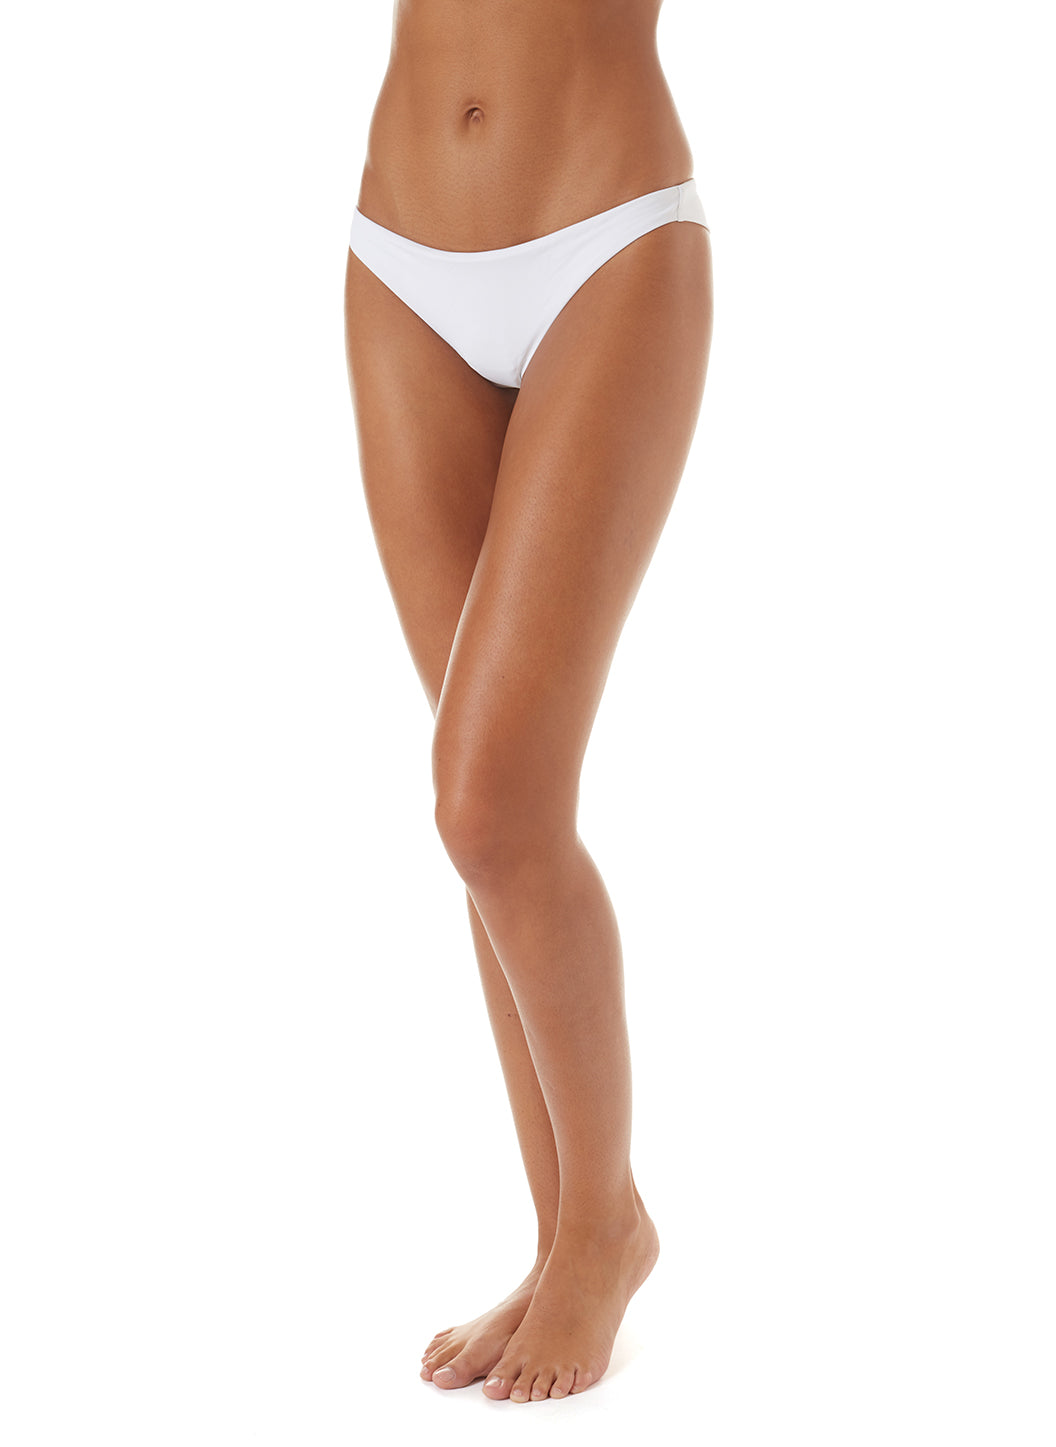 Exclusive Sisi Skimpy Bikini Bottoms White